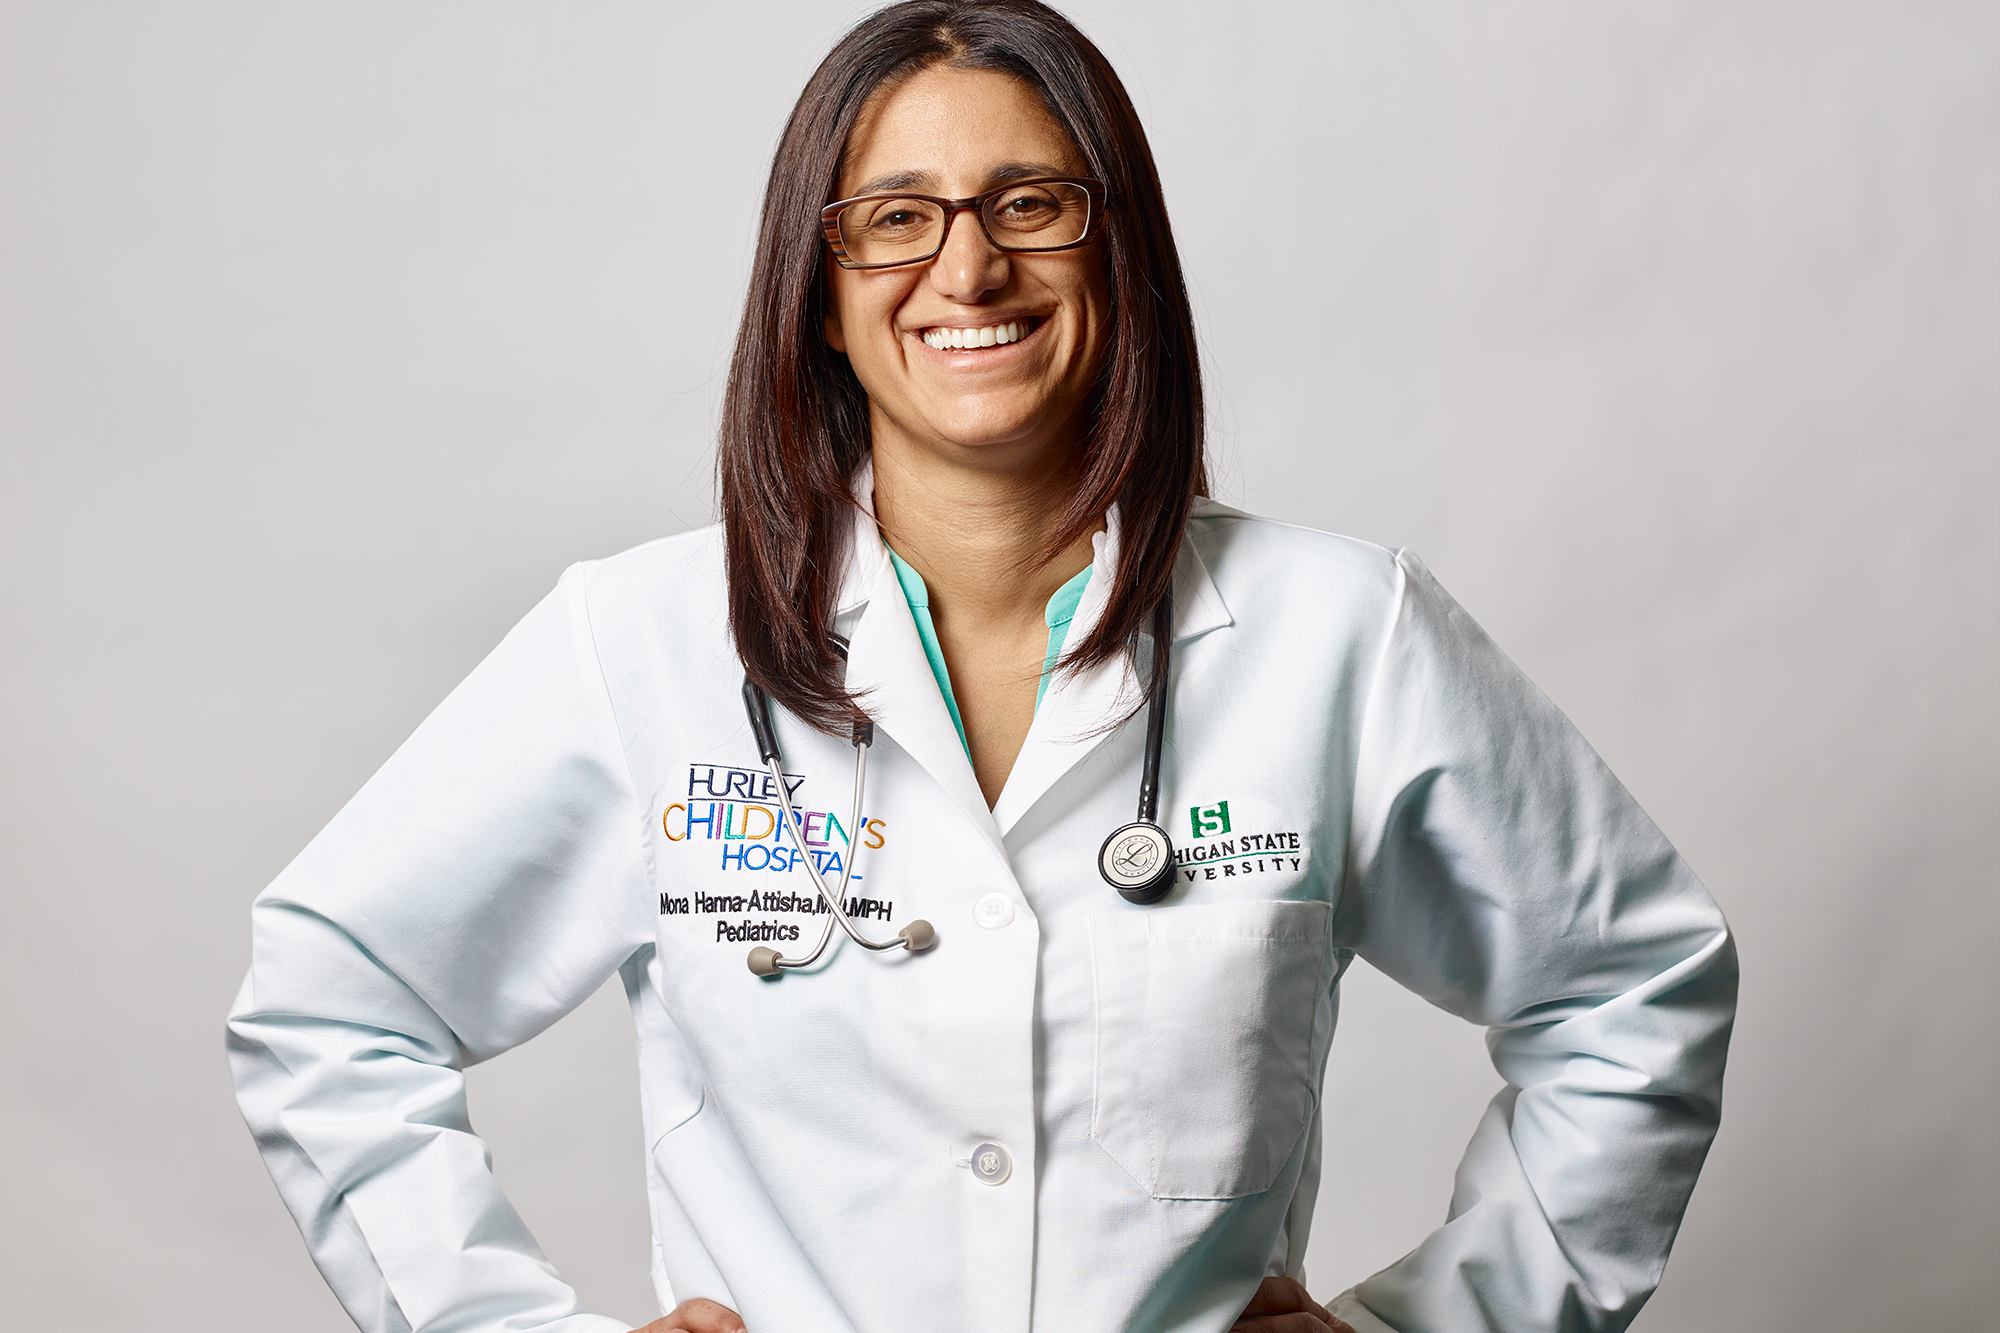 Dr. Mona, the hero of the Flint water crisis